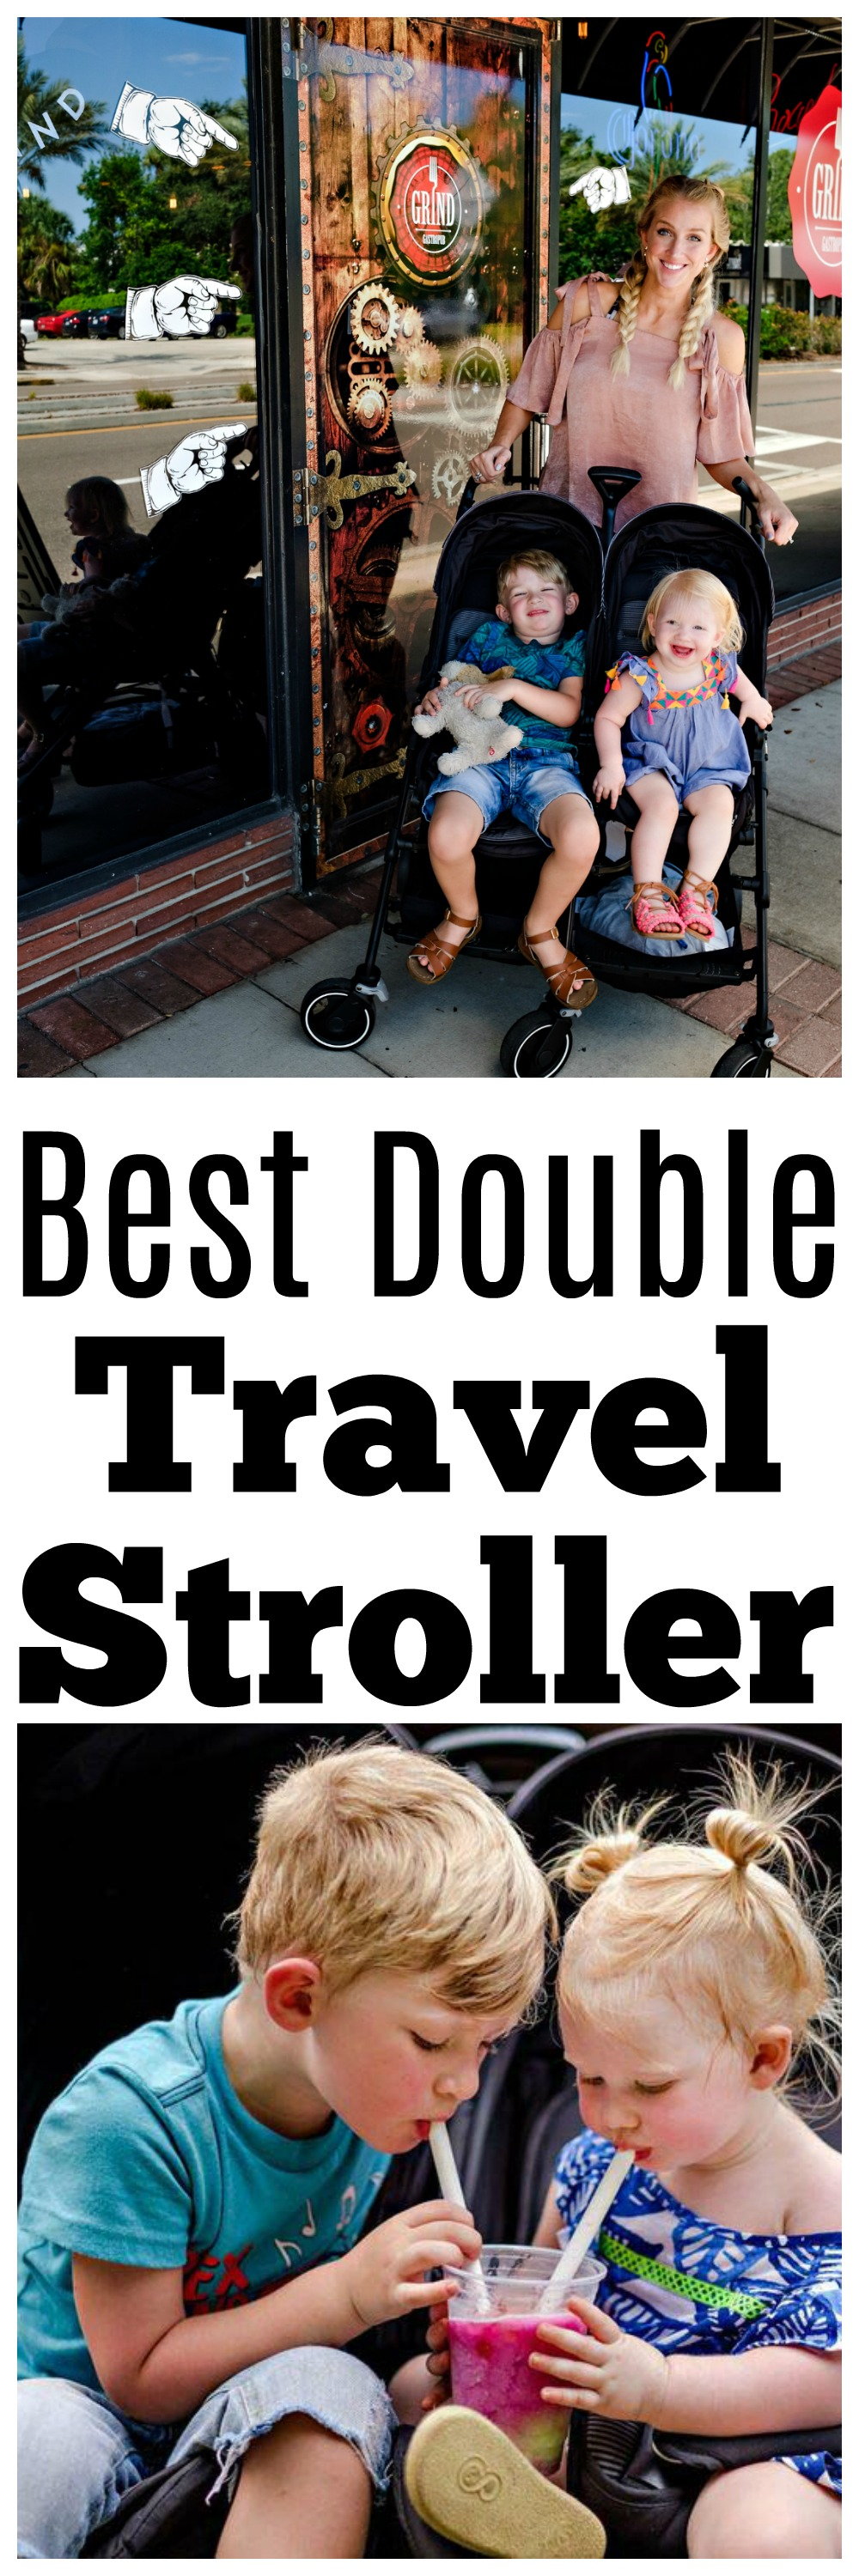 best travel double stroller - The Best Double Stroller For Traveling with Maxi Cosi by Atlanta travel blogger Happily Hughes